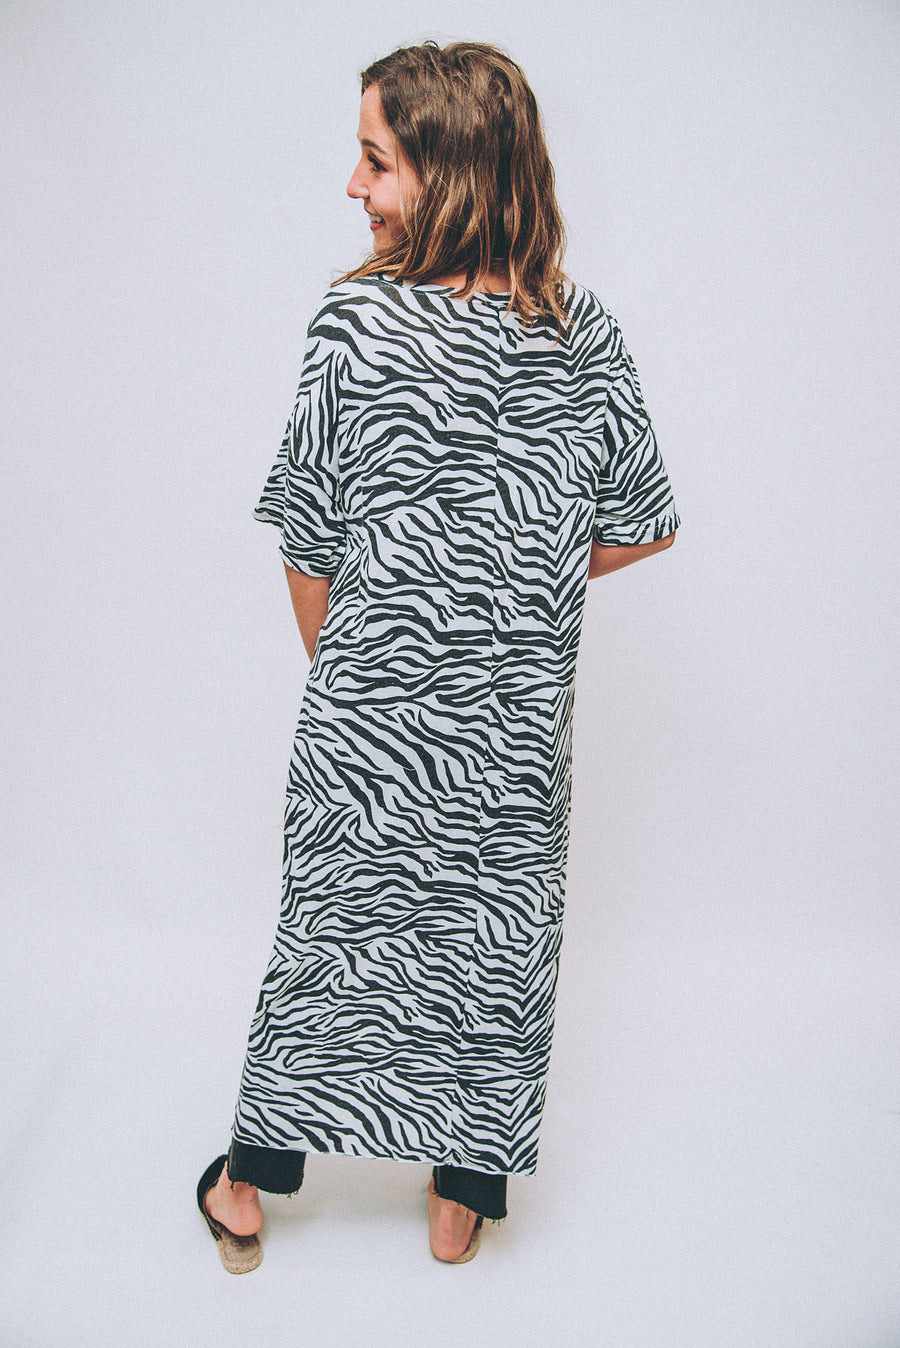 Z SUPPLY: ZEBRA MAXI TEE